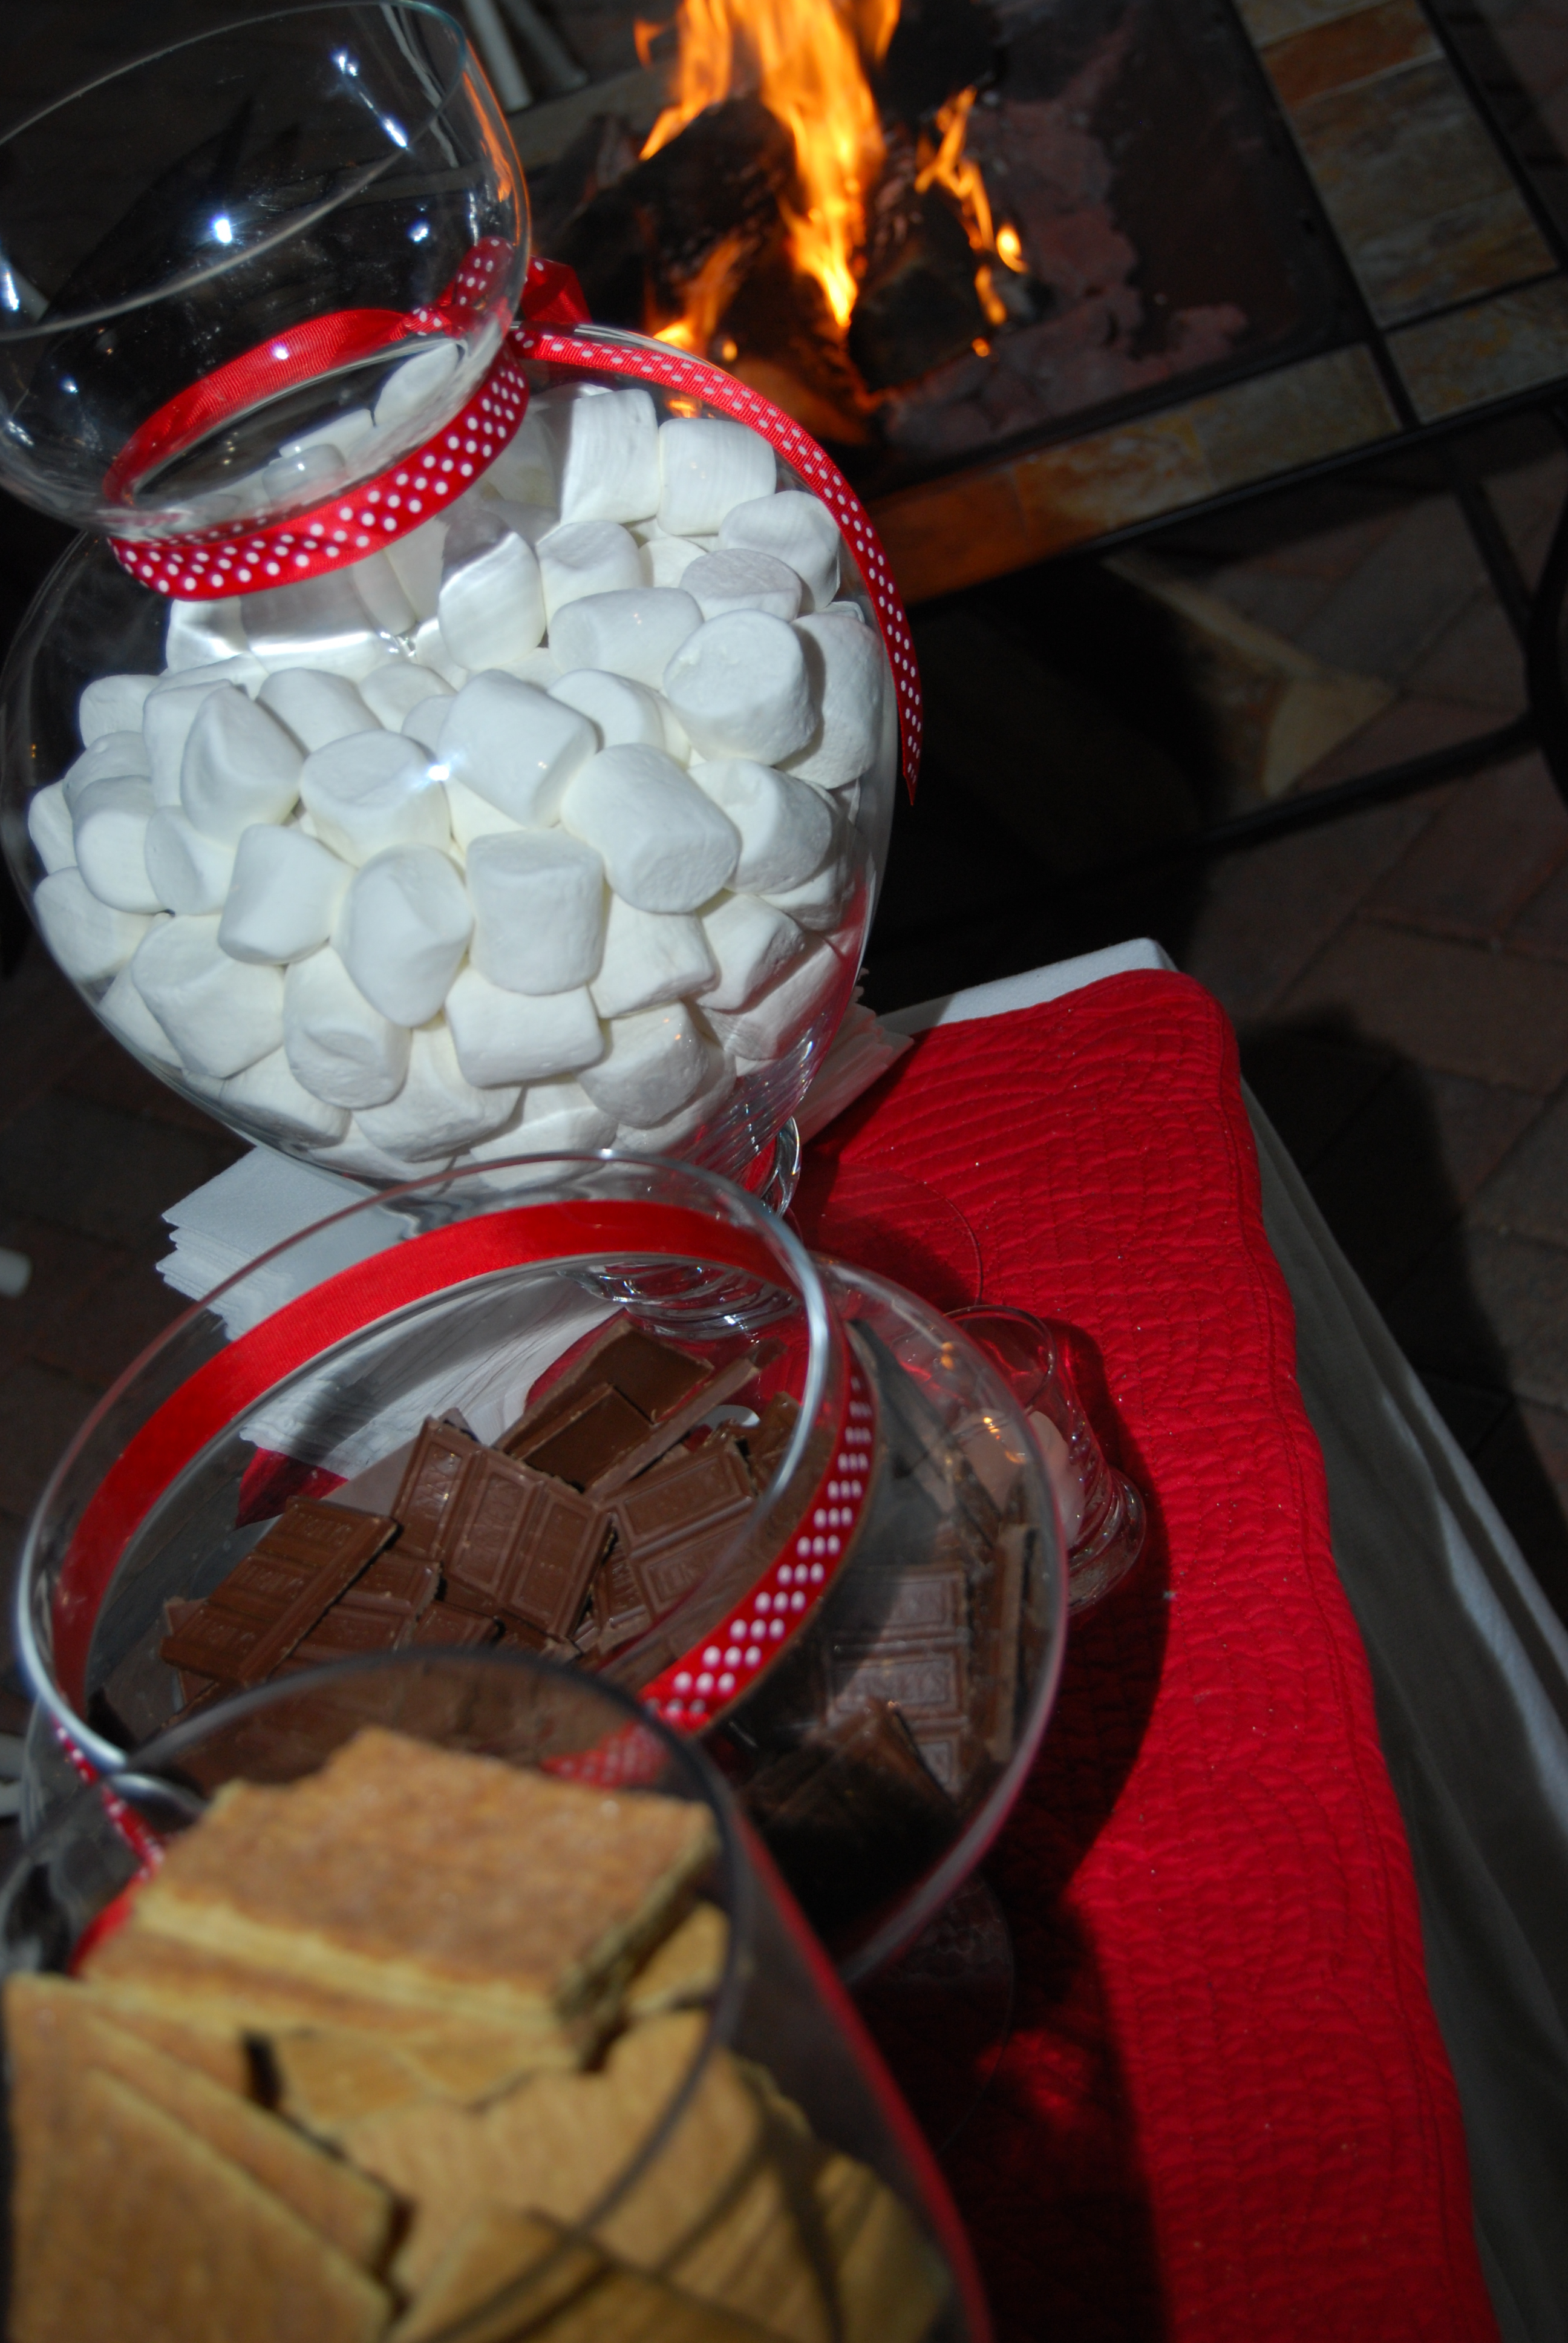 Reception, Flowers & Decor, Decor, white, red, Outdoor, Dessert, Chocolate, Christmas, Smores, Markei events productions, Firepit